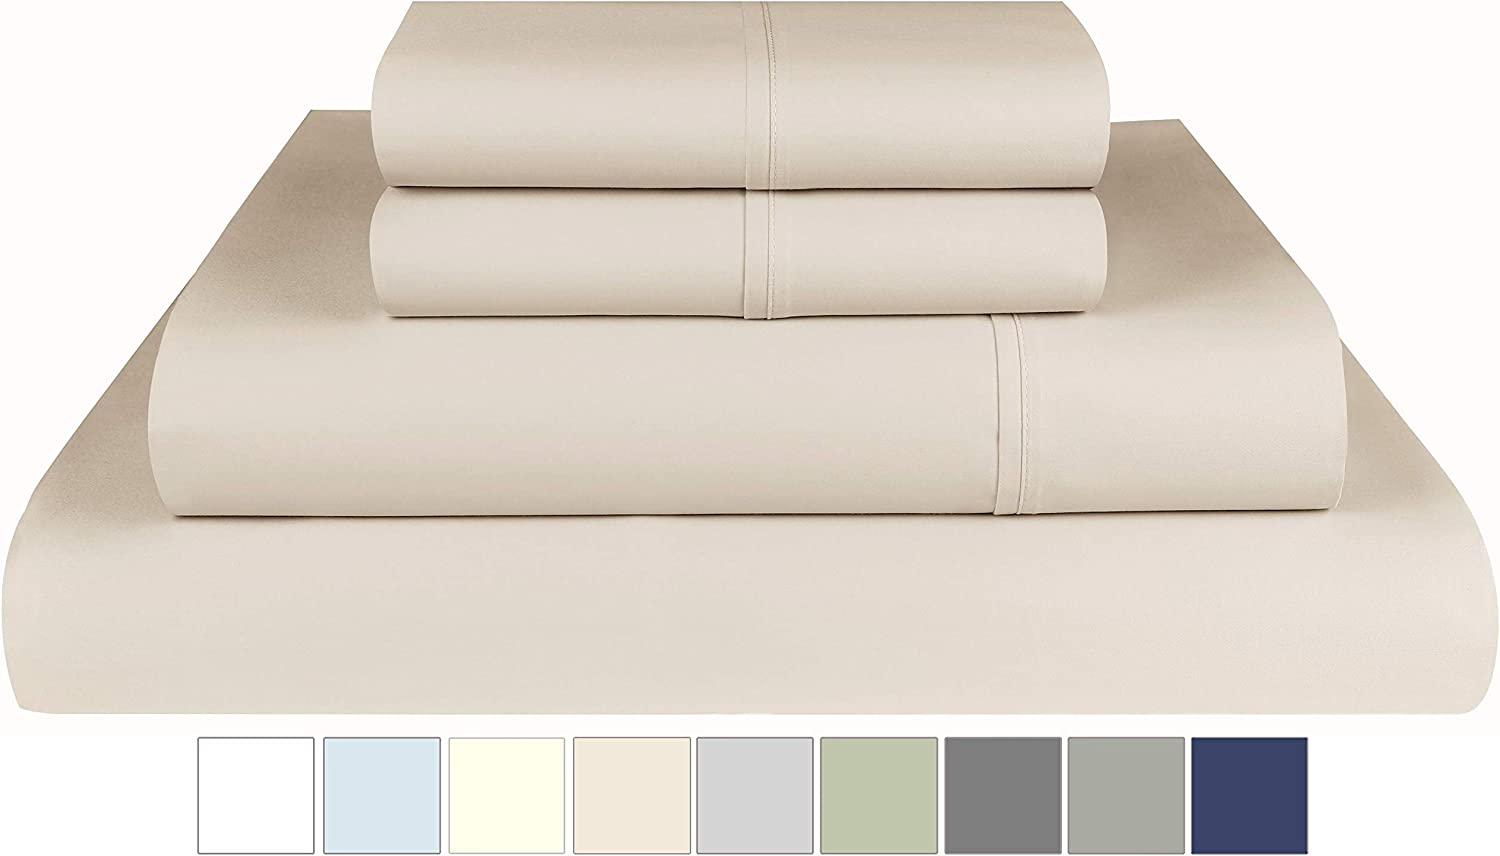 Threadmill Home Linen 800 Thread Count Twin Sheets Sets - 100% Extra Long Staple Cotton Sheets for Twin Size Bed, Luxury 3 Piece Bedding Set with Deep Pocket Fitted Sheet, Smooth Solid Sateen, Beige